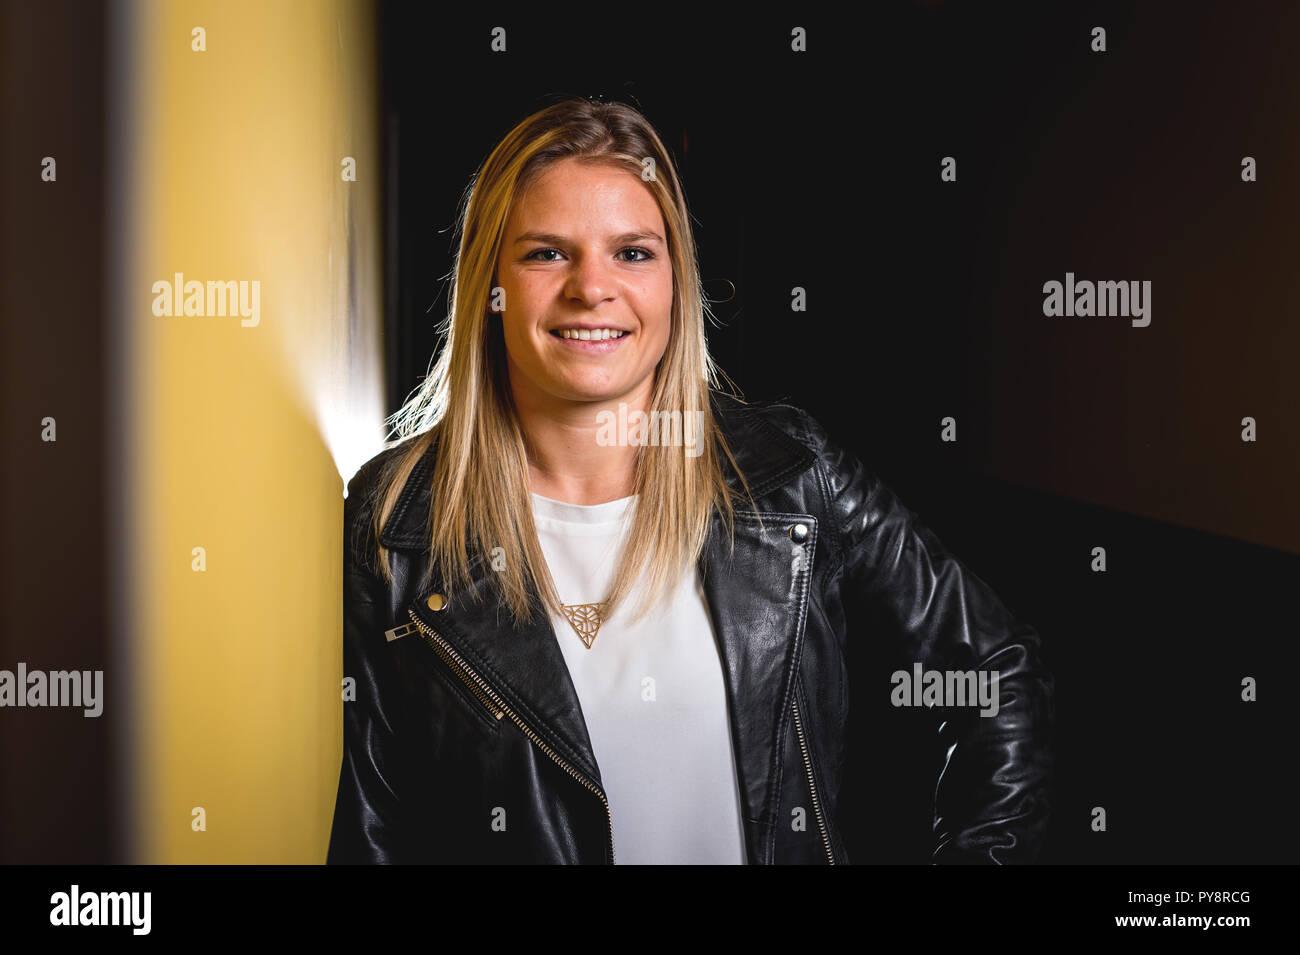 Lyon (south-eastern France). 2017/12/07. Olympique Lyonnais Feminin, French women's football club based in Lyon. Eugenie Le Sommer, French professiona - Stock Image